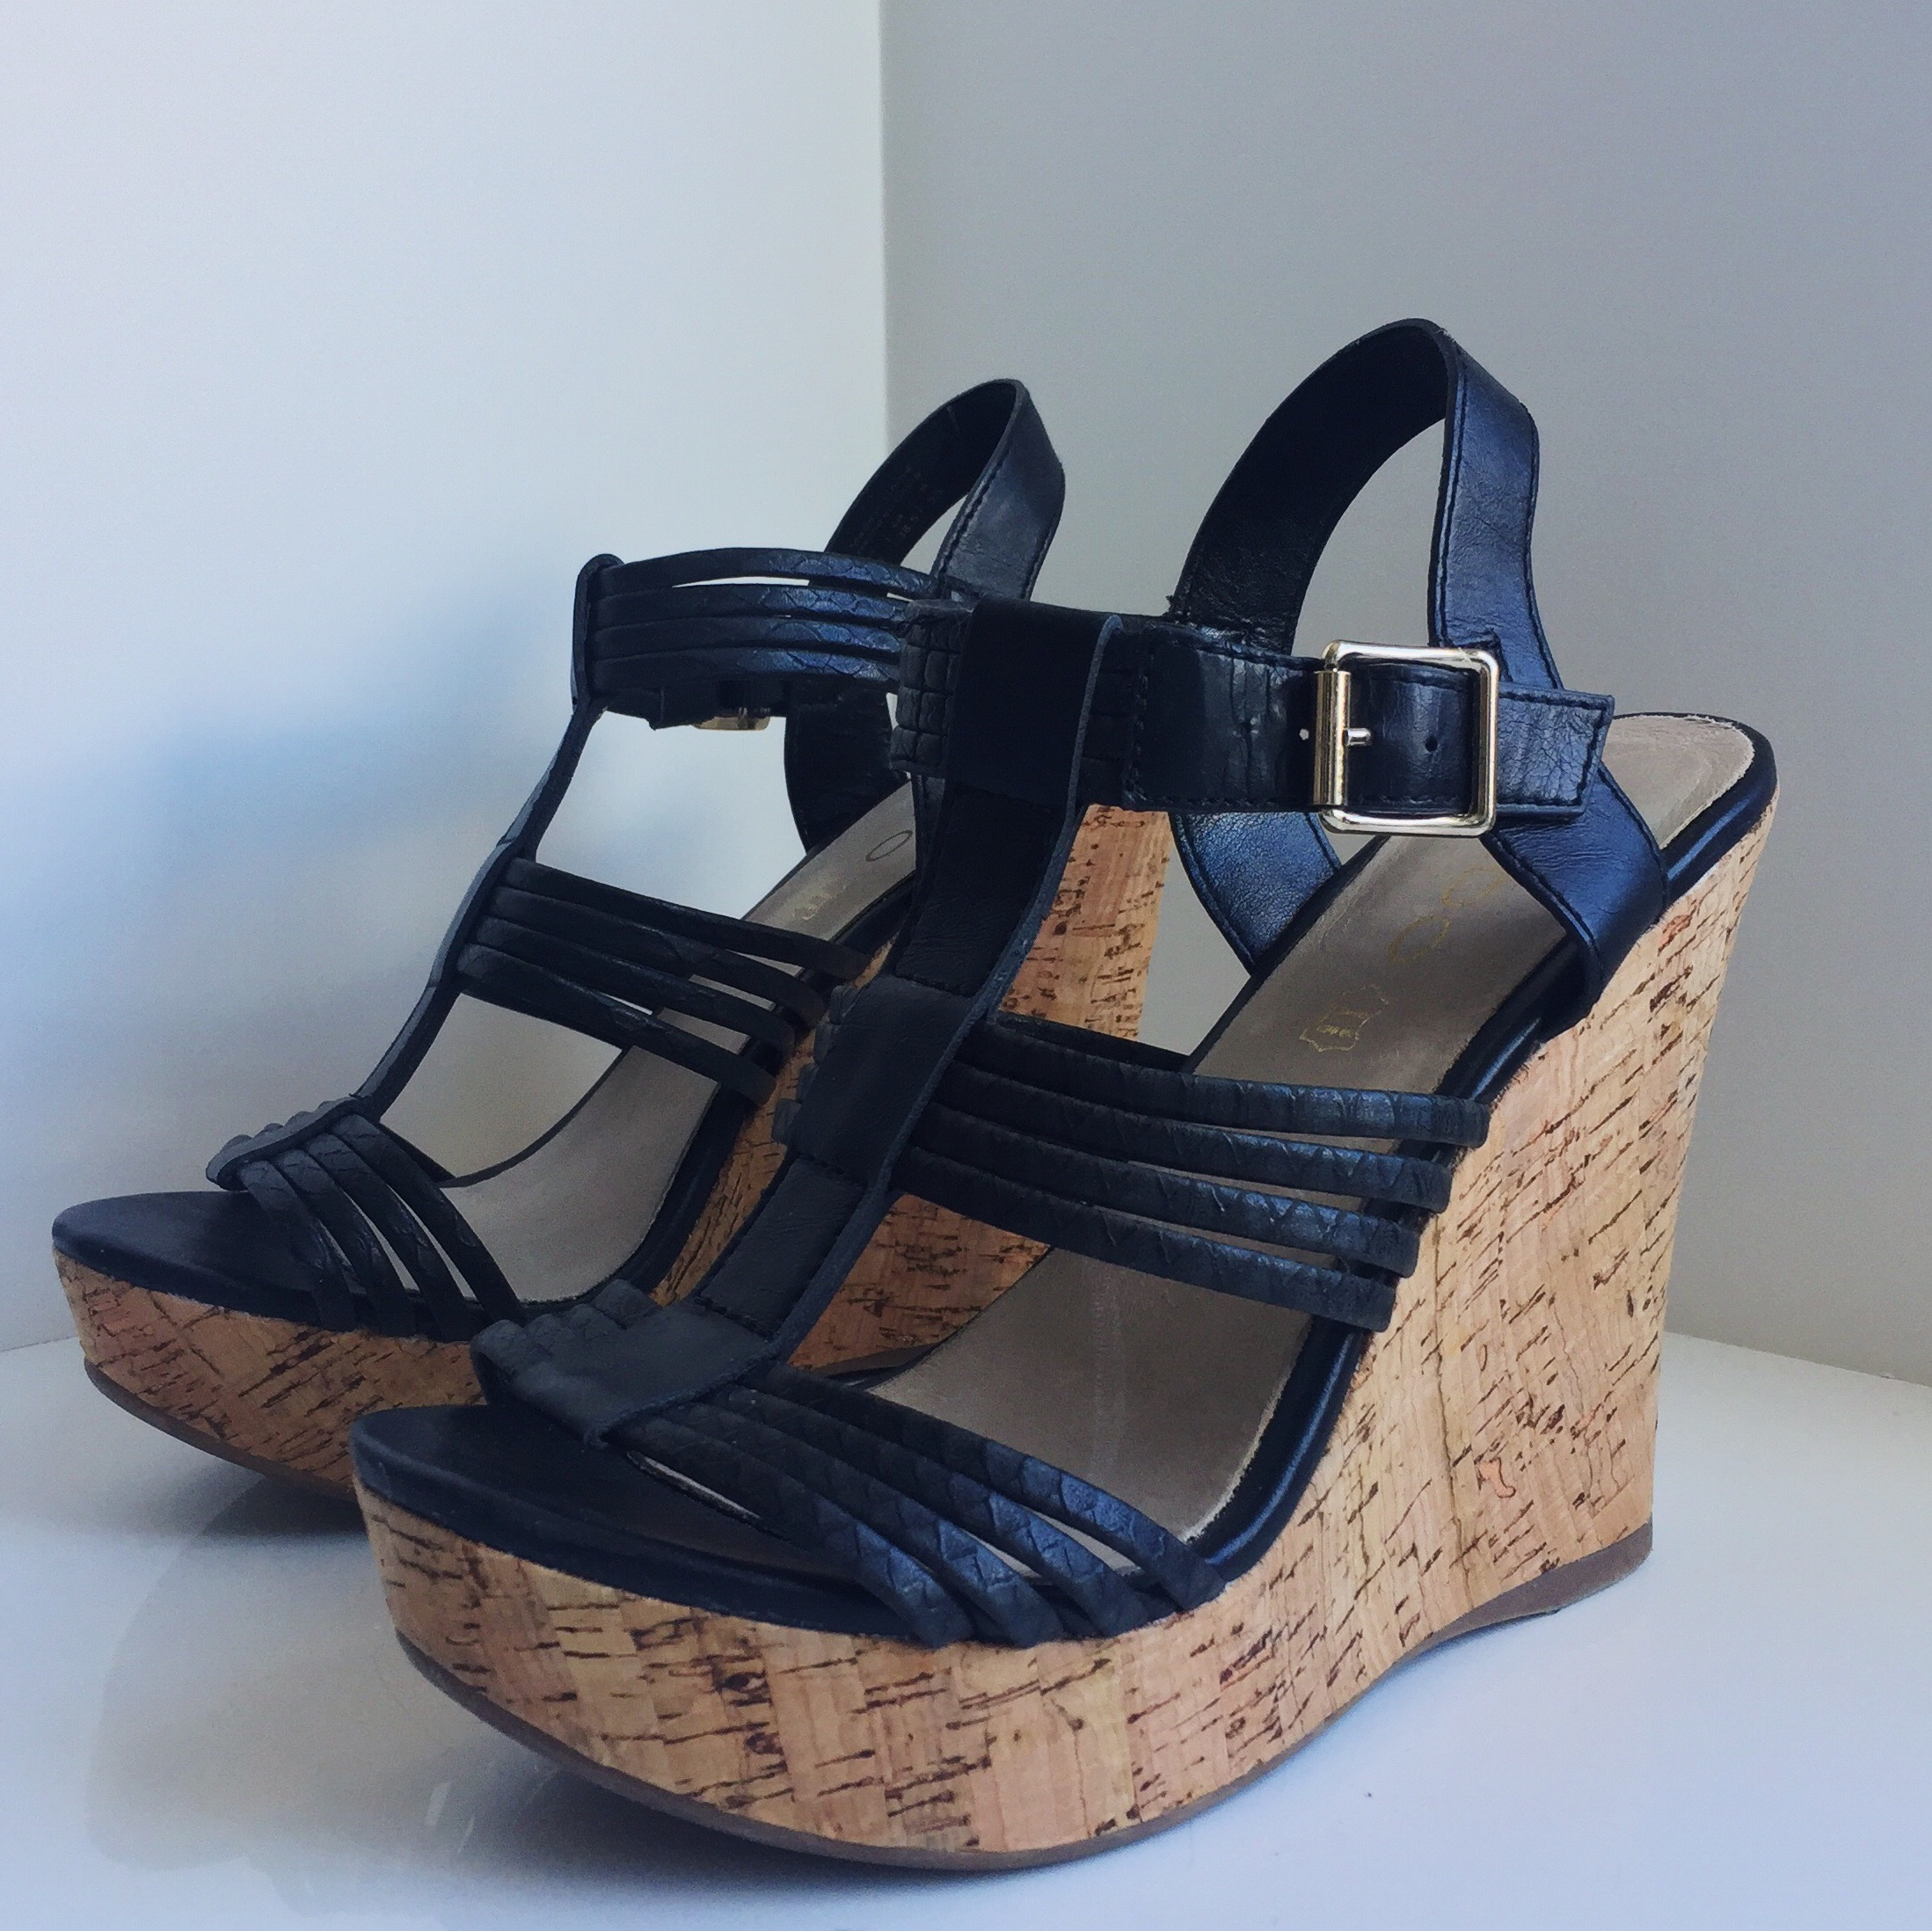 BLACK STRAPPY CORK WEDGES 👡 - These